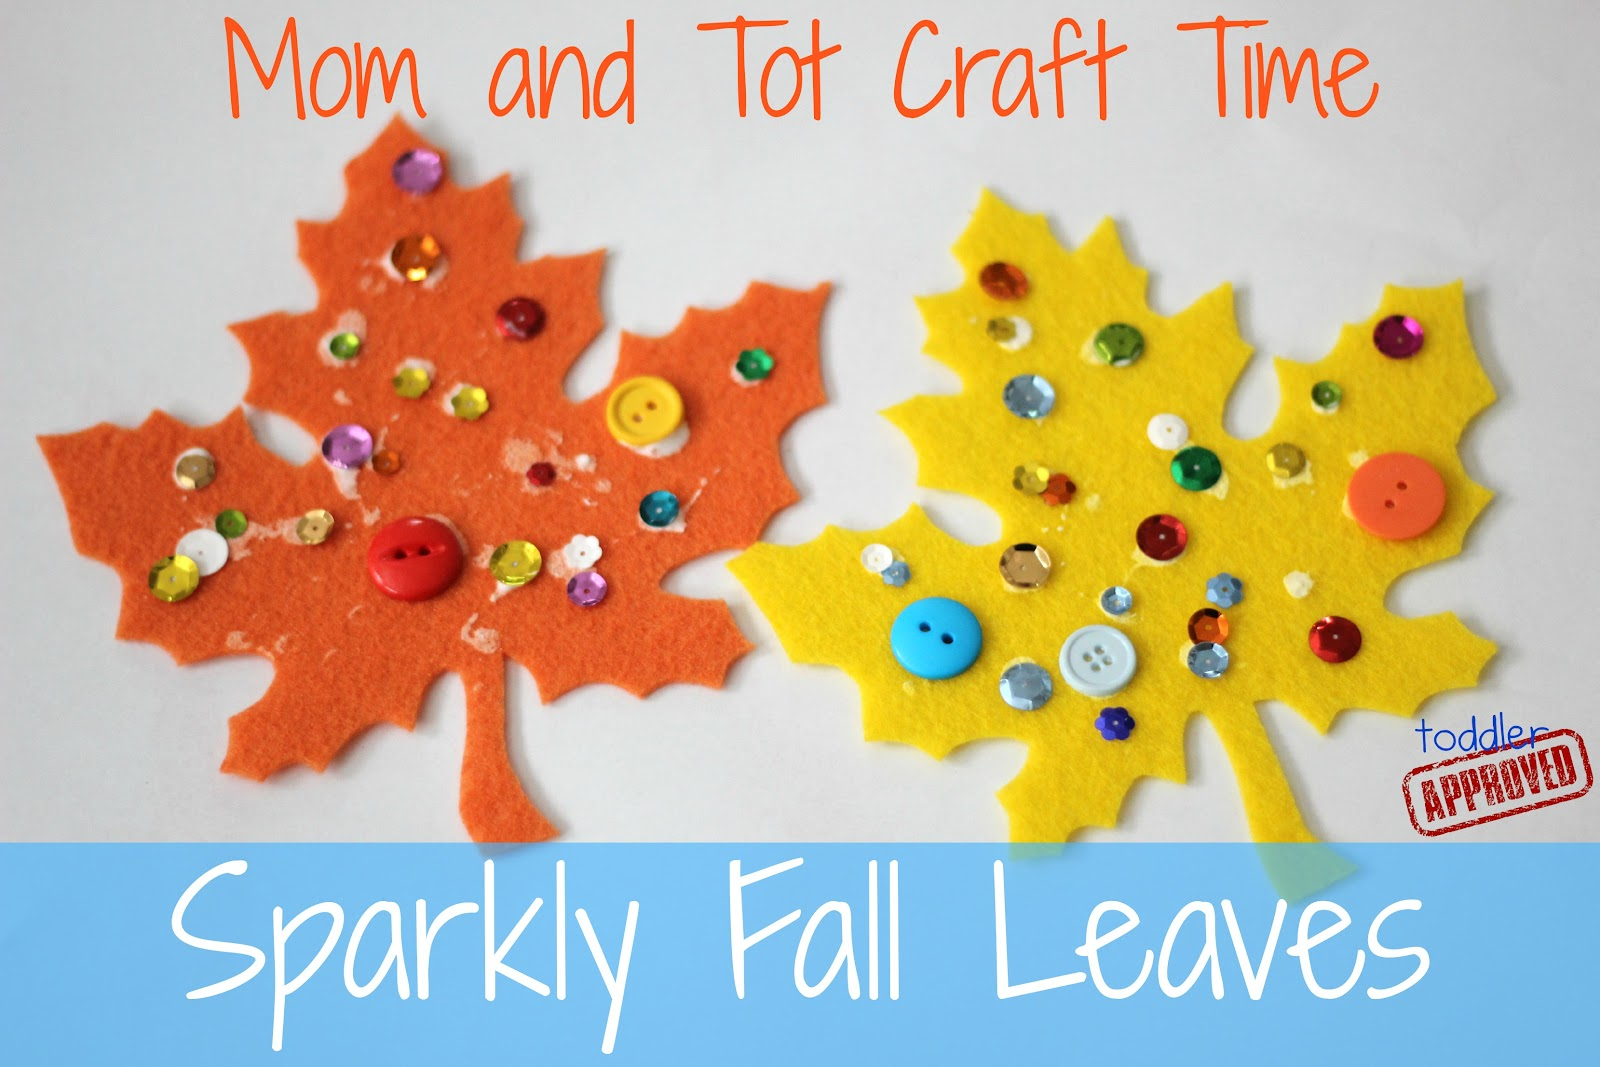 Toddler approved mom and tot craft time sparkly fall leaves for Fall craft ideas for toddlers